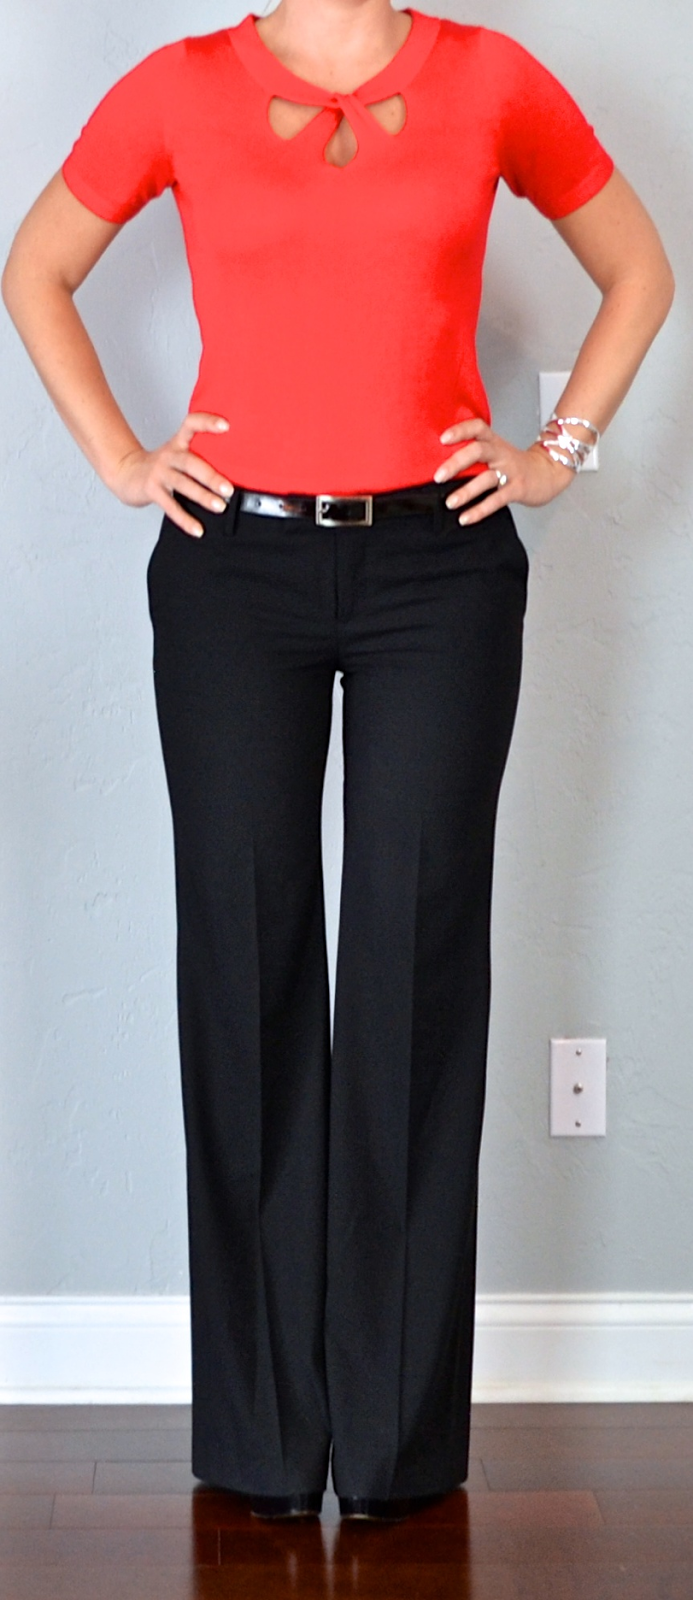 Outfit post red cutout sweater black dress pants black pumps